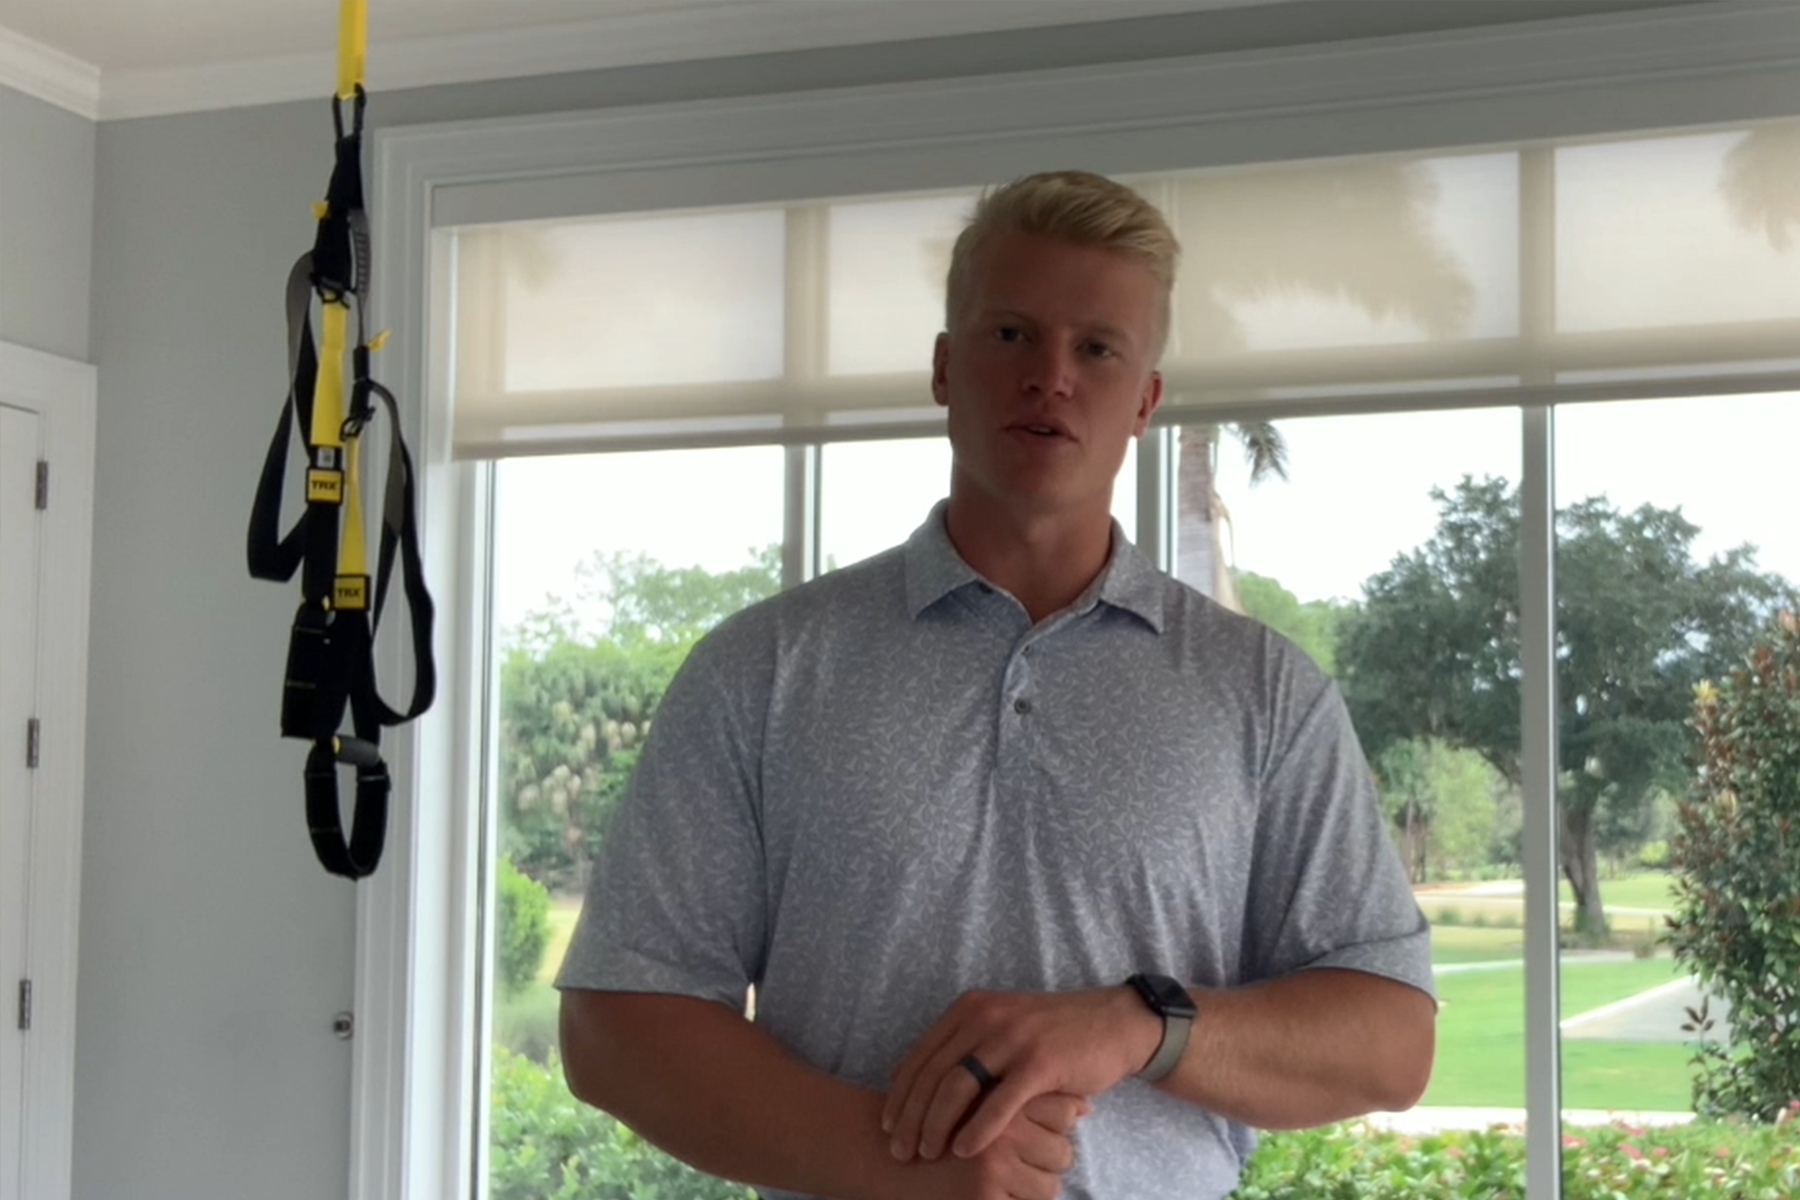 5 At-Home Exercises You Can Do Without Equipment to Improve your Golf Game